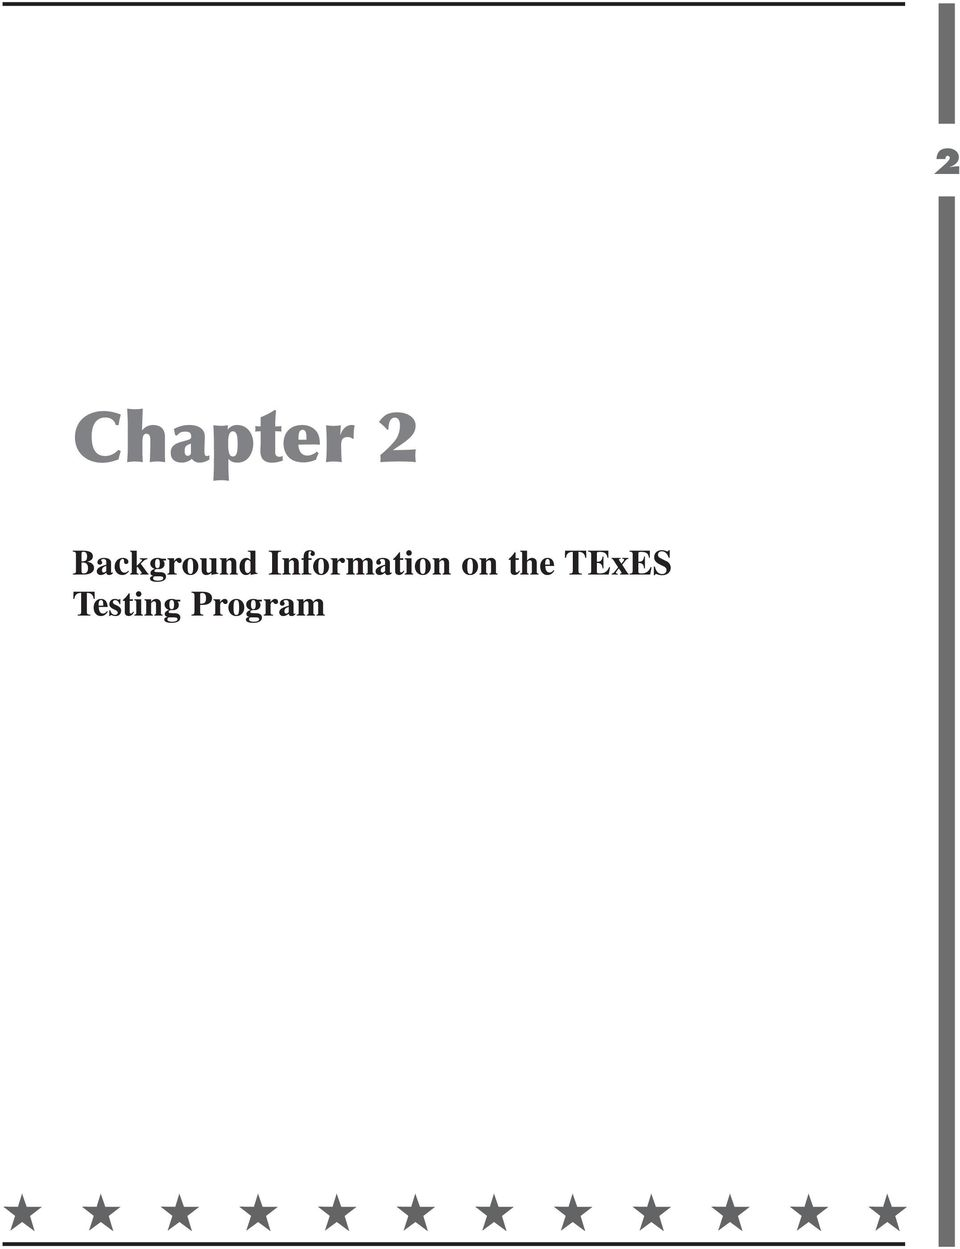 Texes texas examinations of educator standards preparation manual 12 background information on the texes testing program the texes tests for texas teachers 2 as required by the texas education code successful performance fandeluxe Choice Image